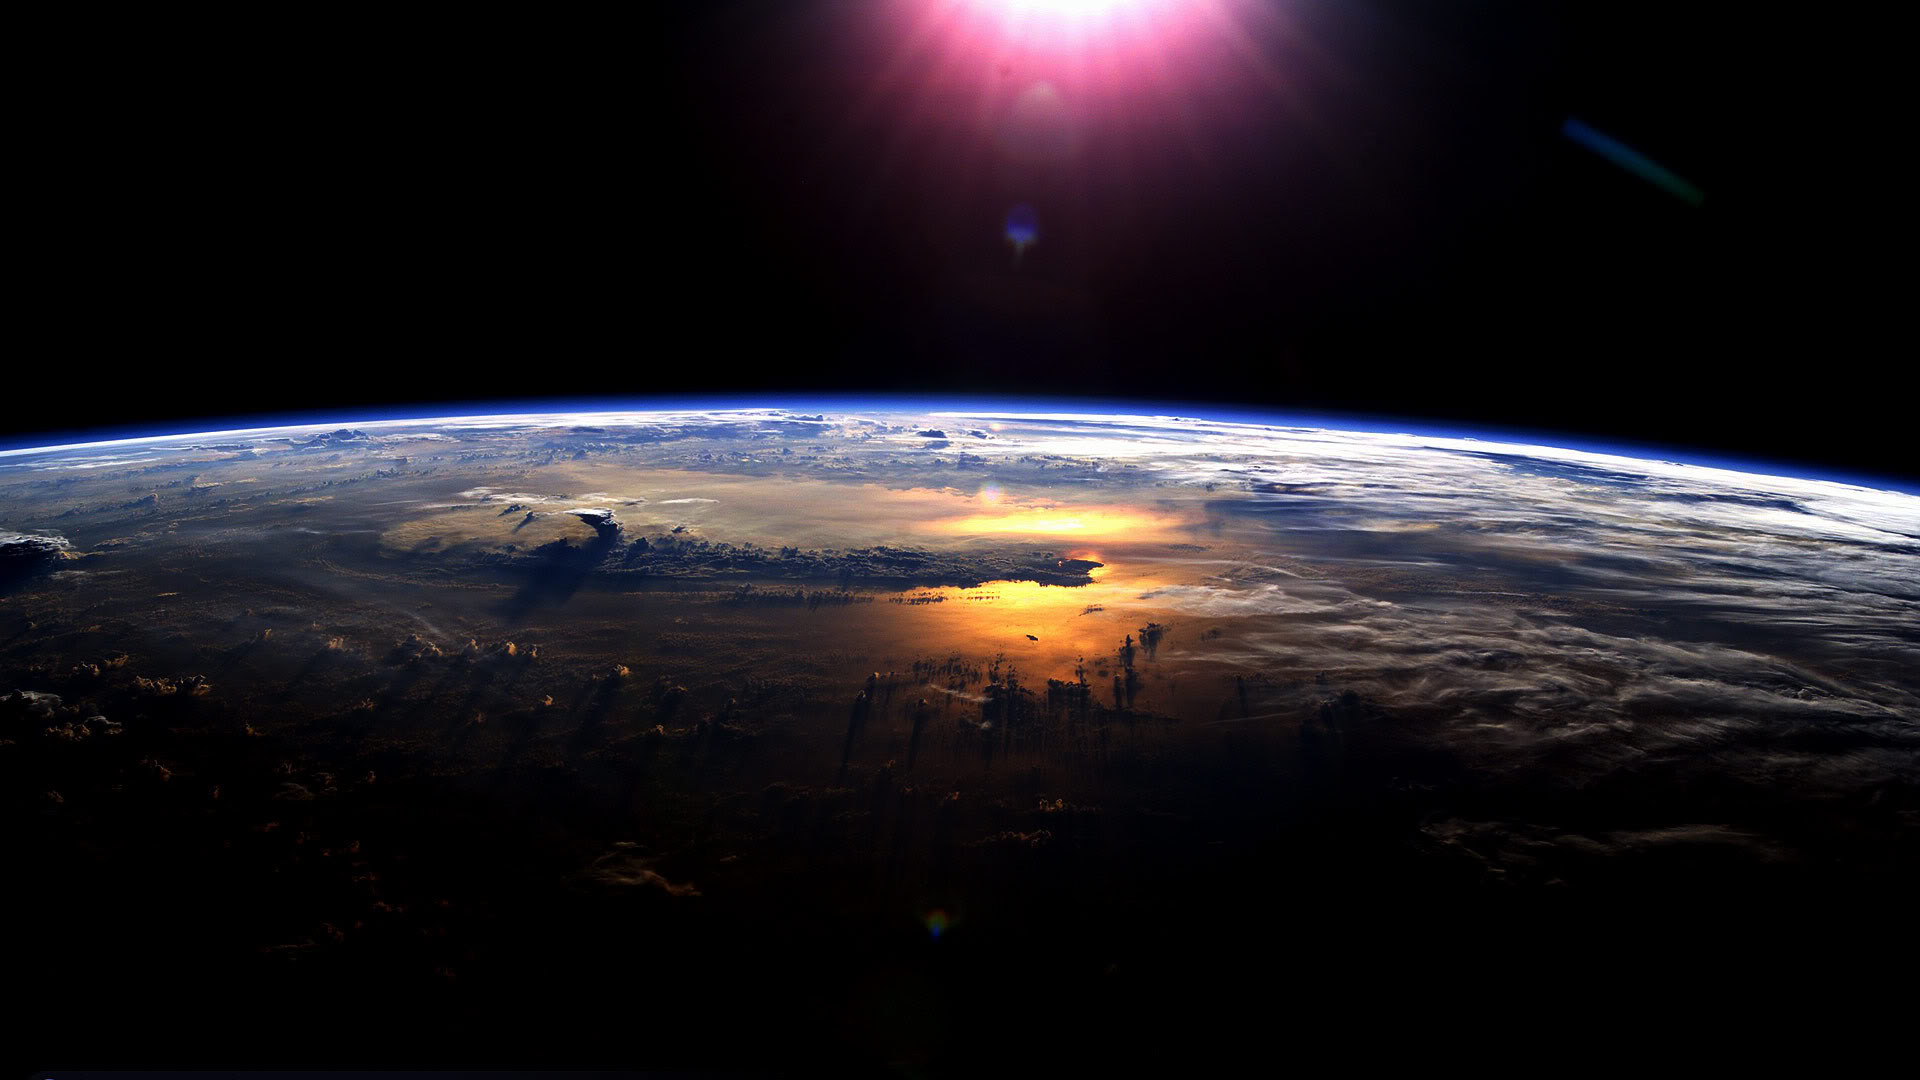 Earth World sun Aerospace Weltall Space Szenerie Surfacce Reflection Epic Shot Nature Colorful Scene Wallpaper